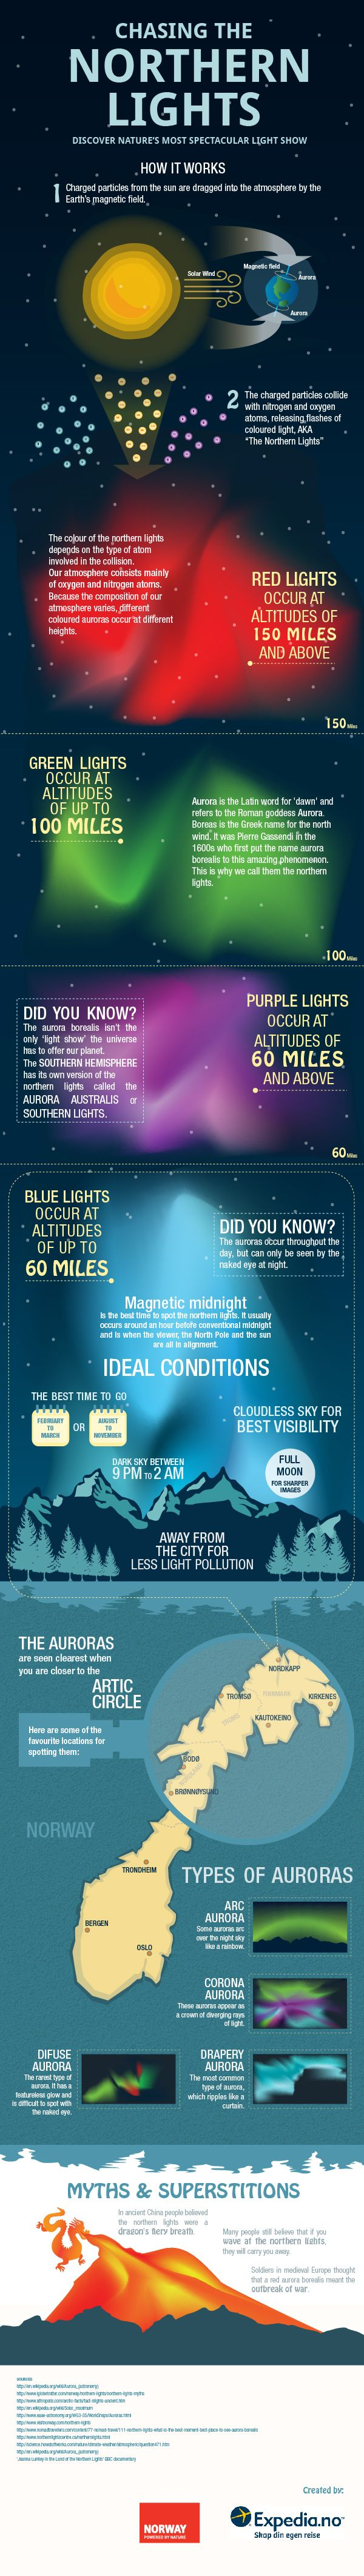 Northern Lights infographic.